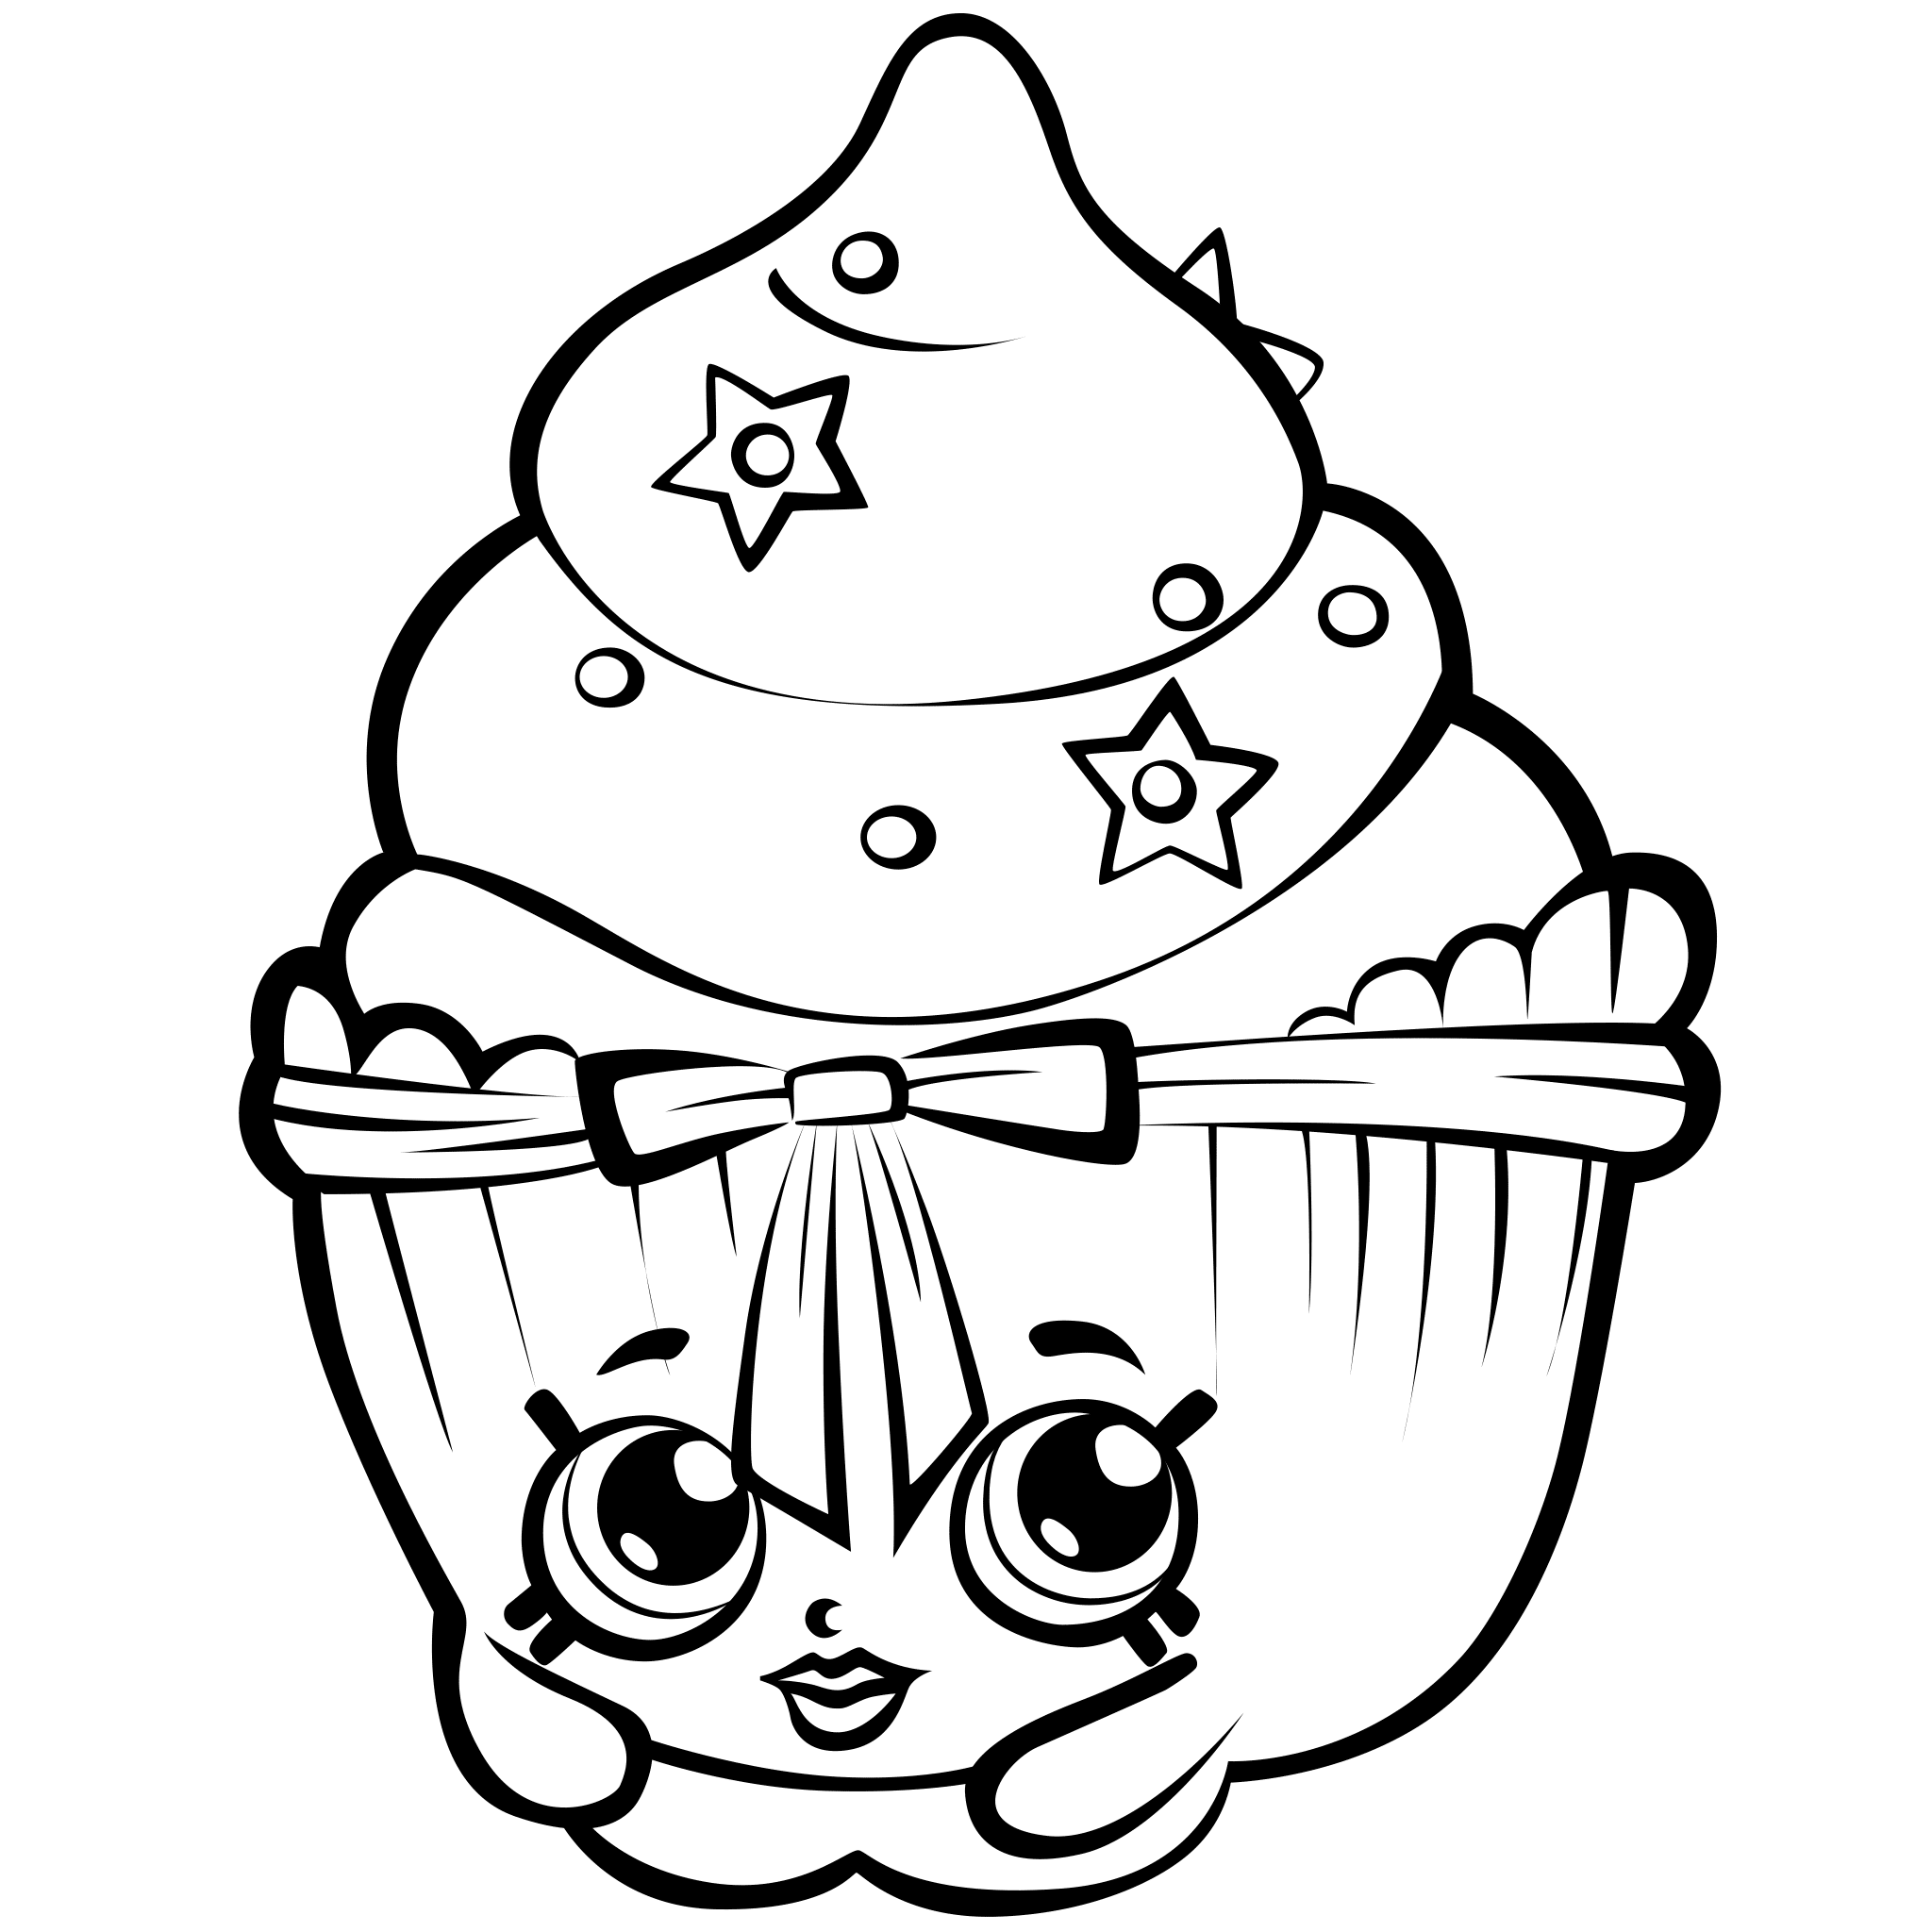 picture relating to Printable Shopkins Coloring Pages titled Shopkins Coloring Internet pages - Least difficult Coloring Internet pages For Small children